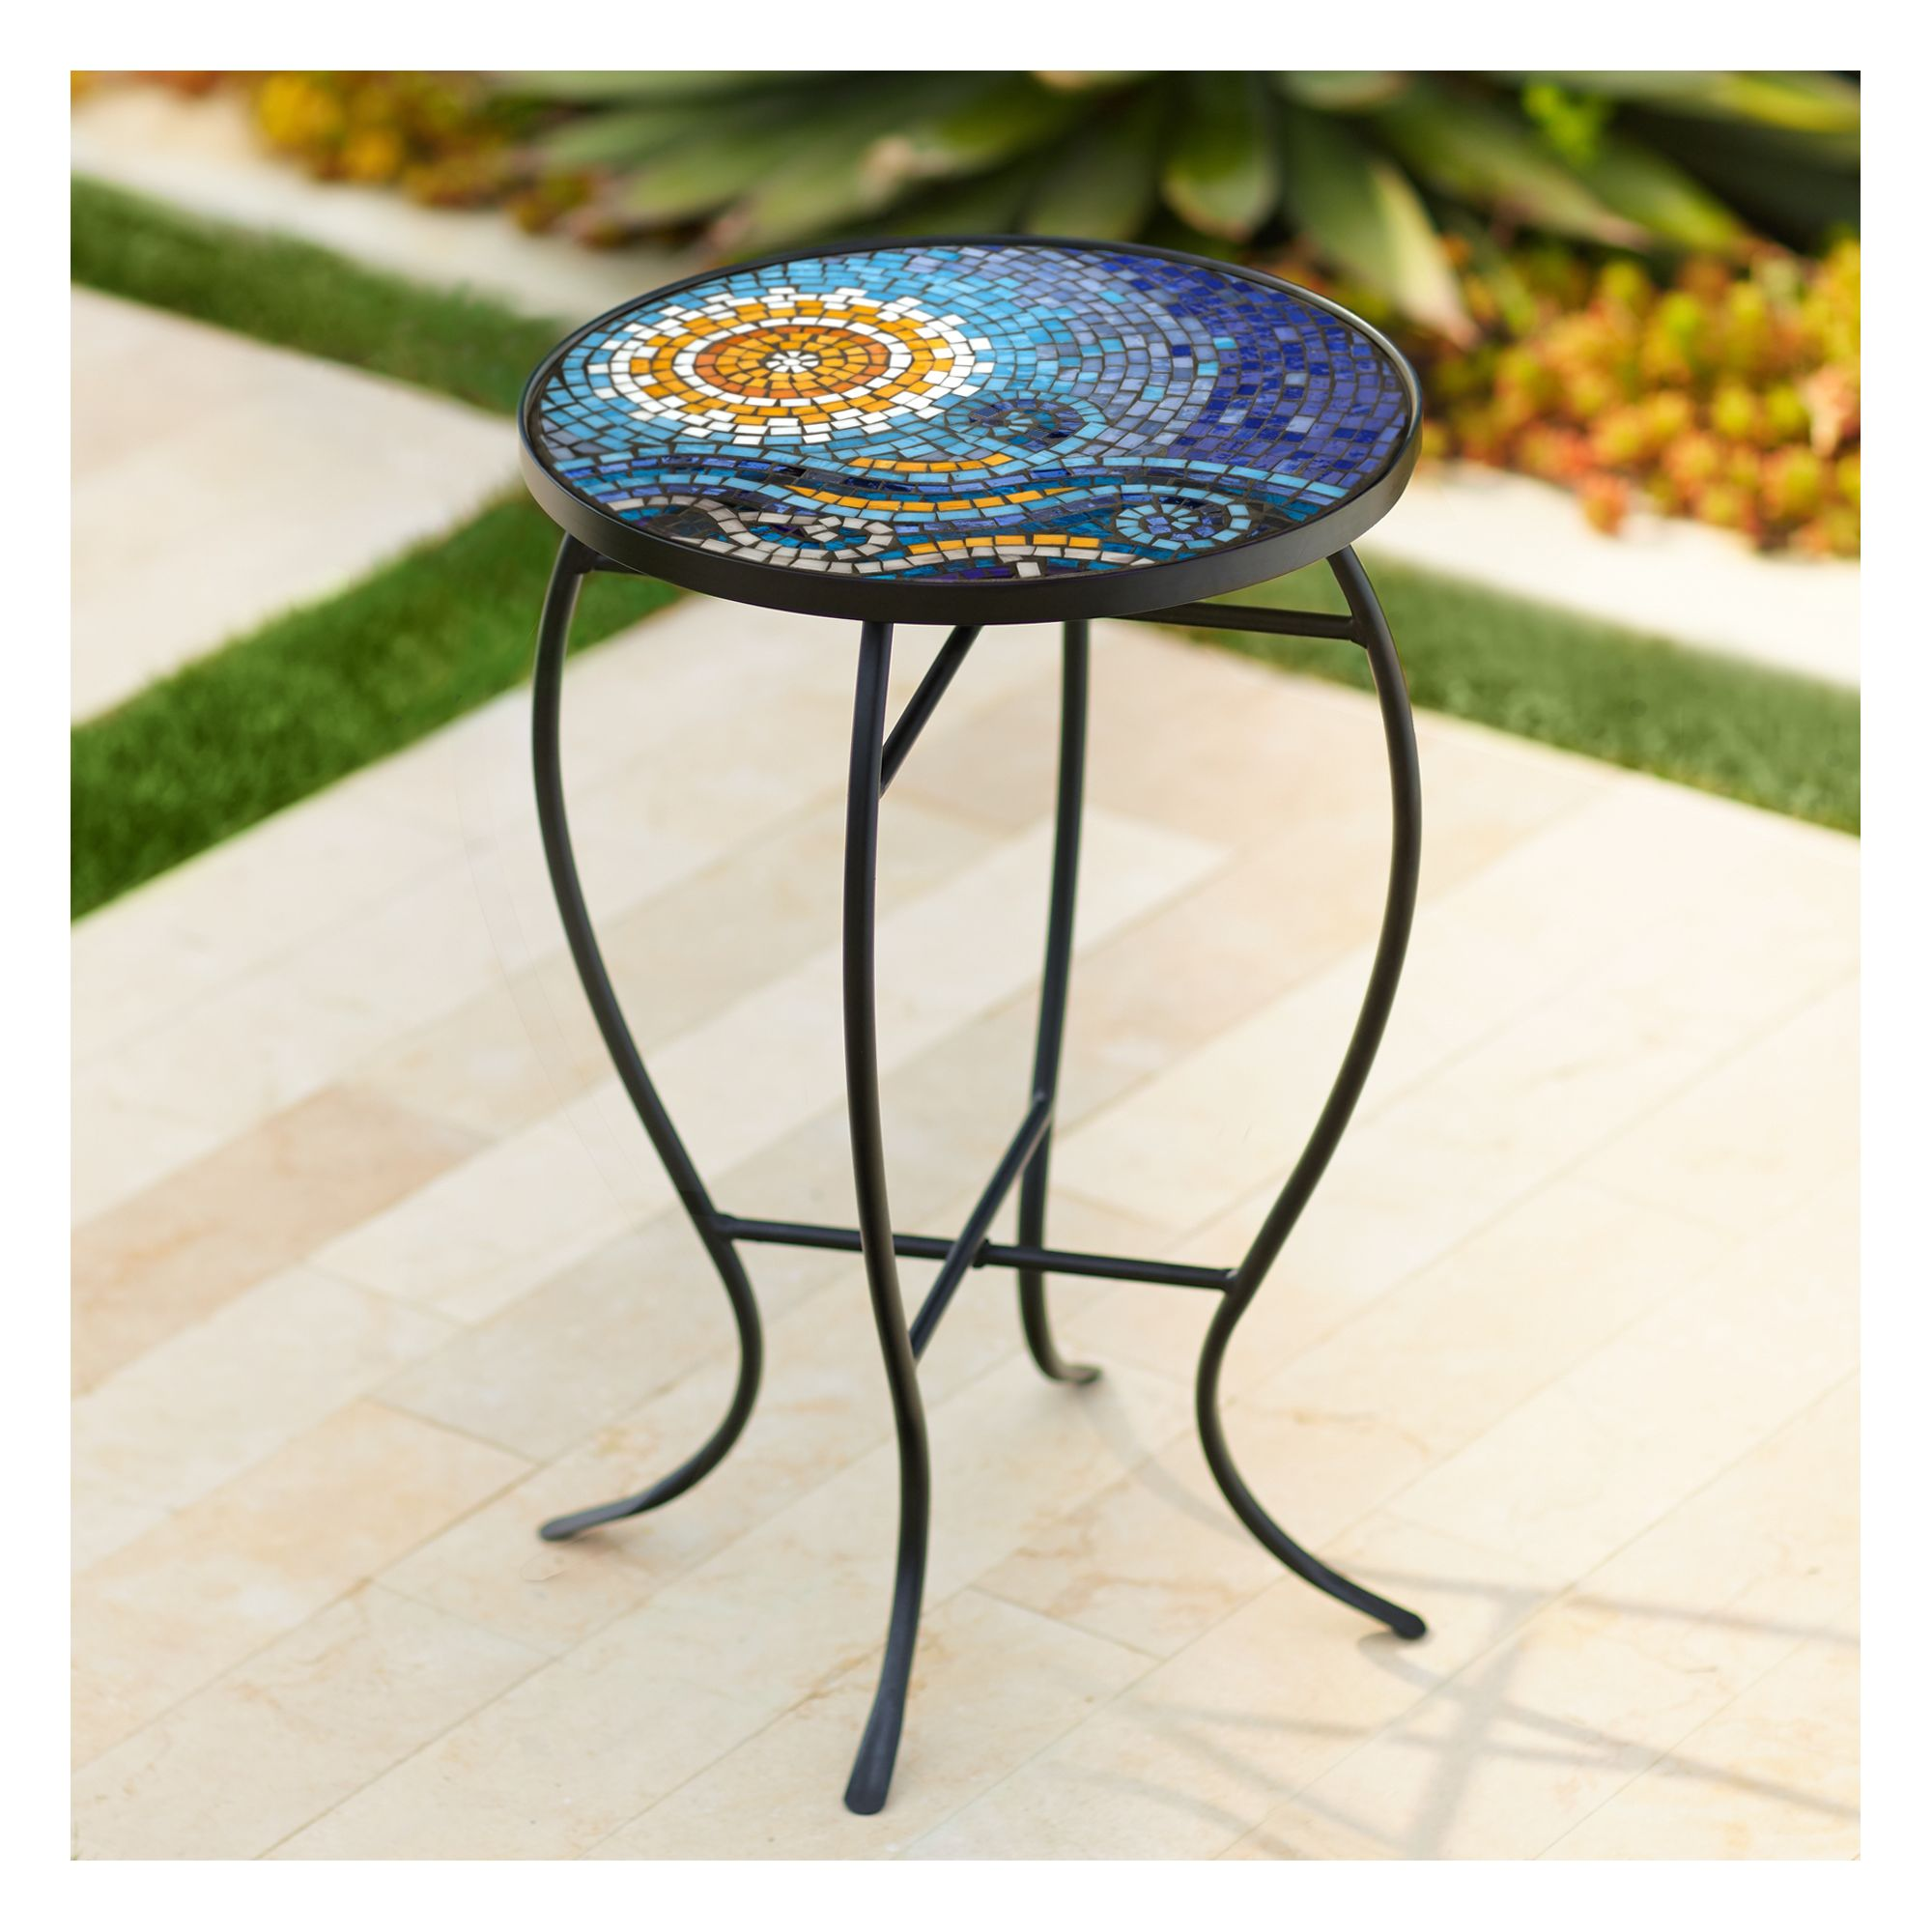 Teal Island Designs Ocean Mosaic Black Iron Outdoor Accent ... on Outdoor Living Iron Mosaic id=94901